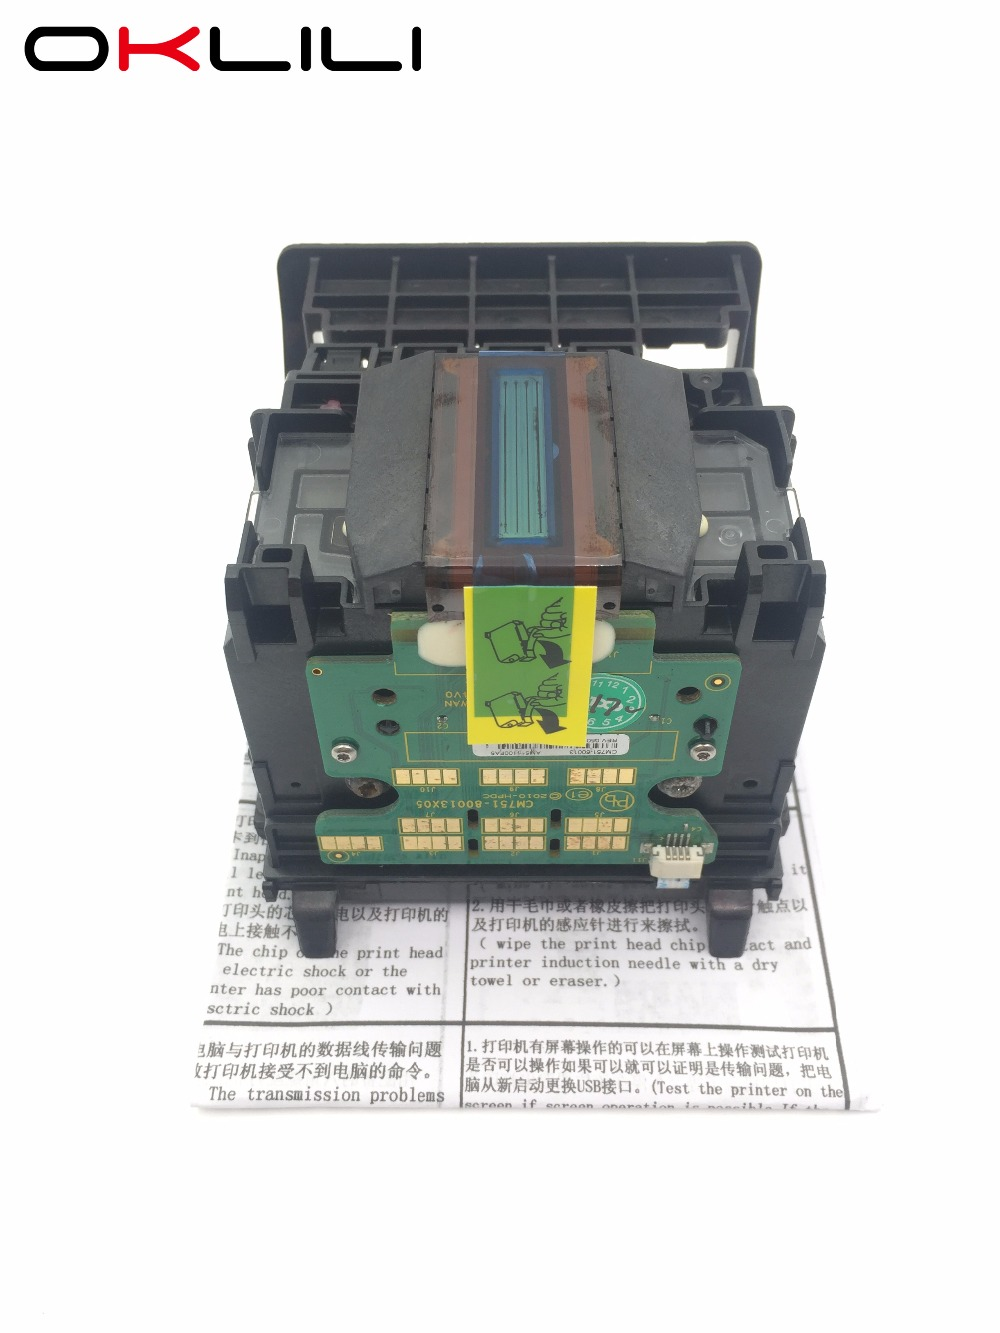 CM751-80013A 950 951 950XL 951XL Printhead Print head for HP Pro 8100 8600 Plus 8610 8620 8625 8630 8700 Pro 251DW 251 276 276DW magician style cotton clothes for pet dog black red m